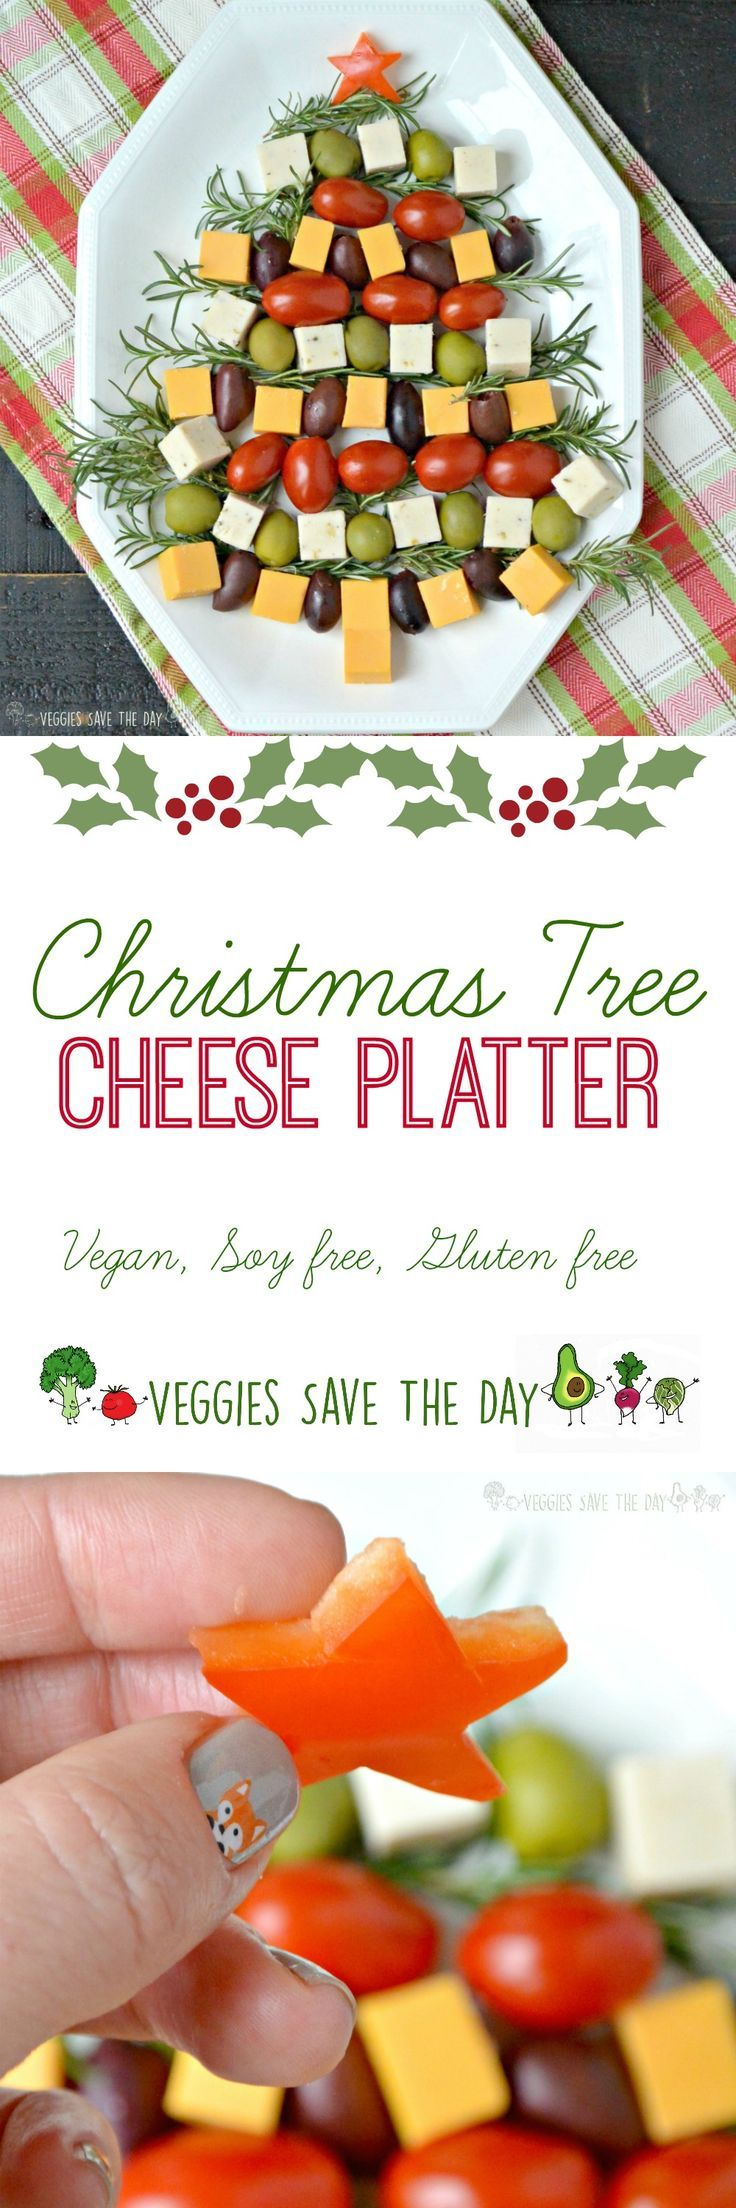 Learn how to make a Christmas Tree Cheese Platter in 5 easy steps! (vegan, soy free, gluten free)